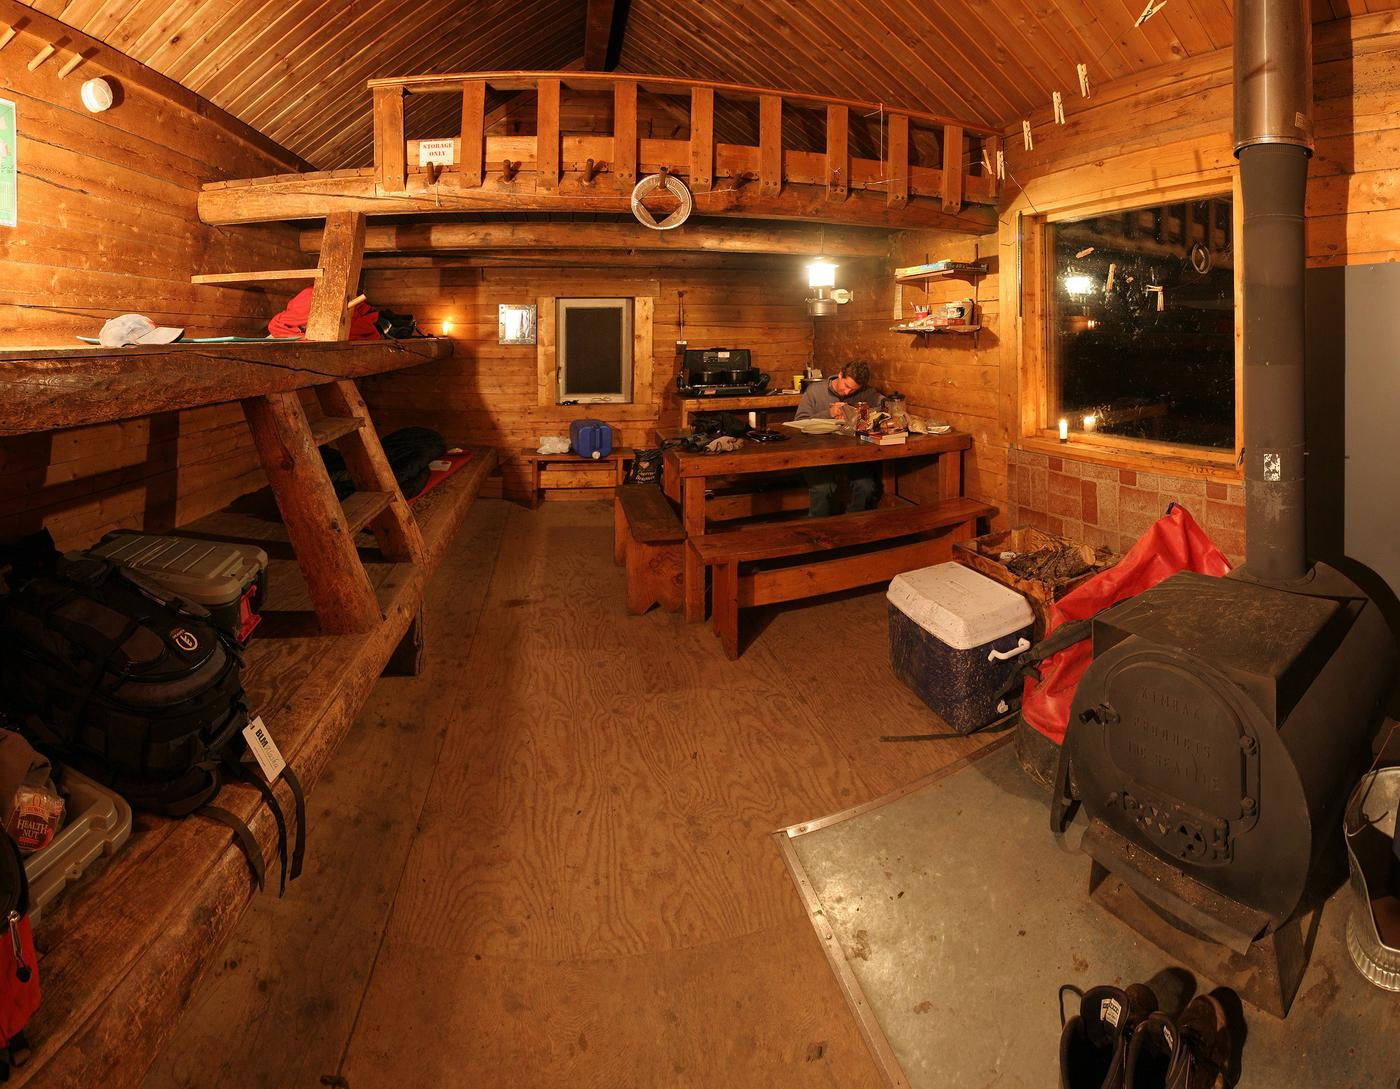 Log cabin interior with bunks, table, and woodstoveInterior of Lee's Cabin